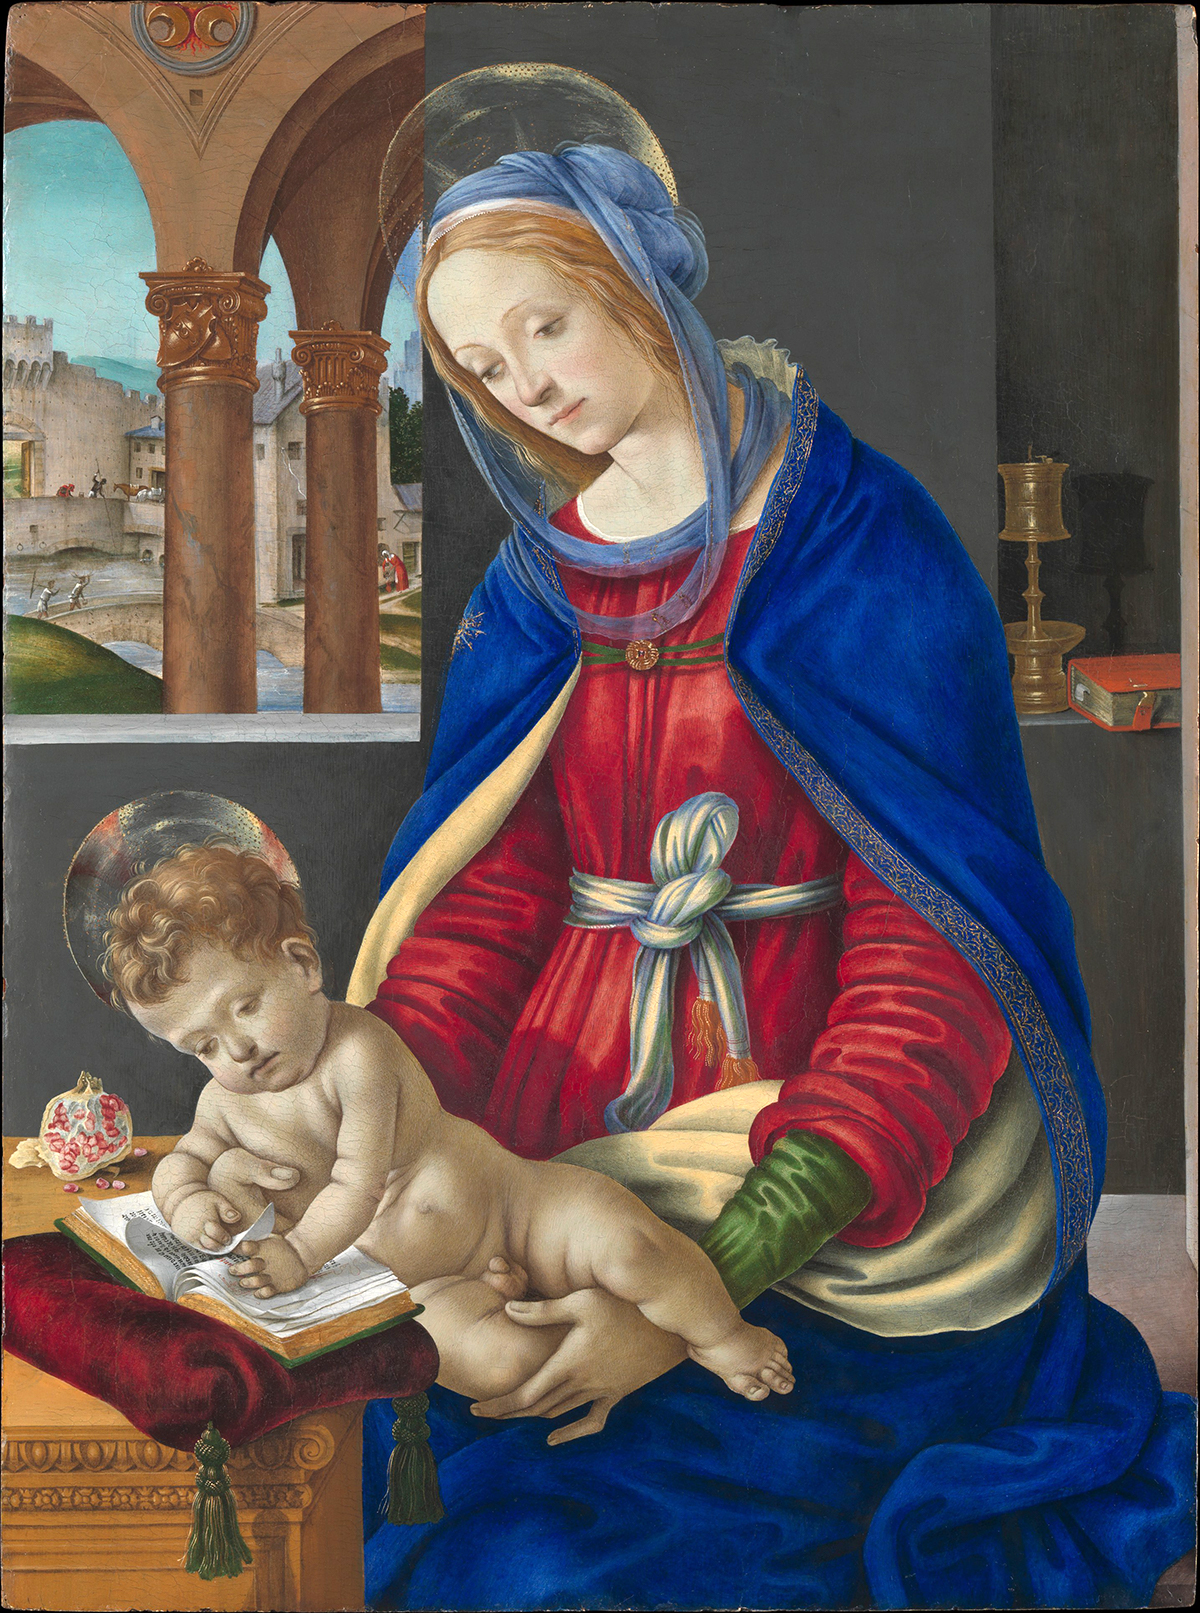 Filippino Lippi's Madonna and The Child (1483-1484)